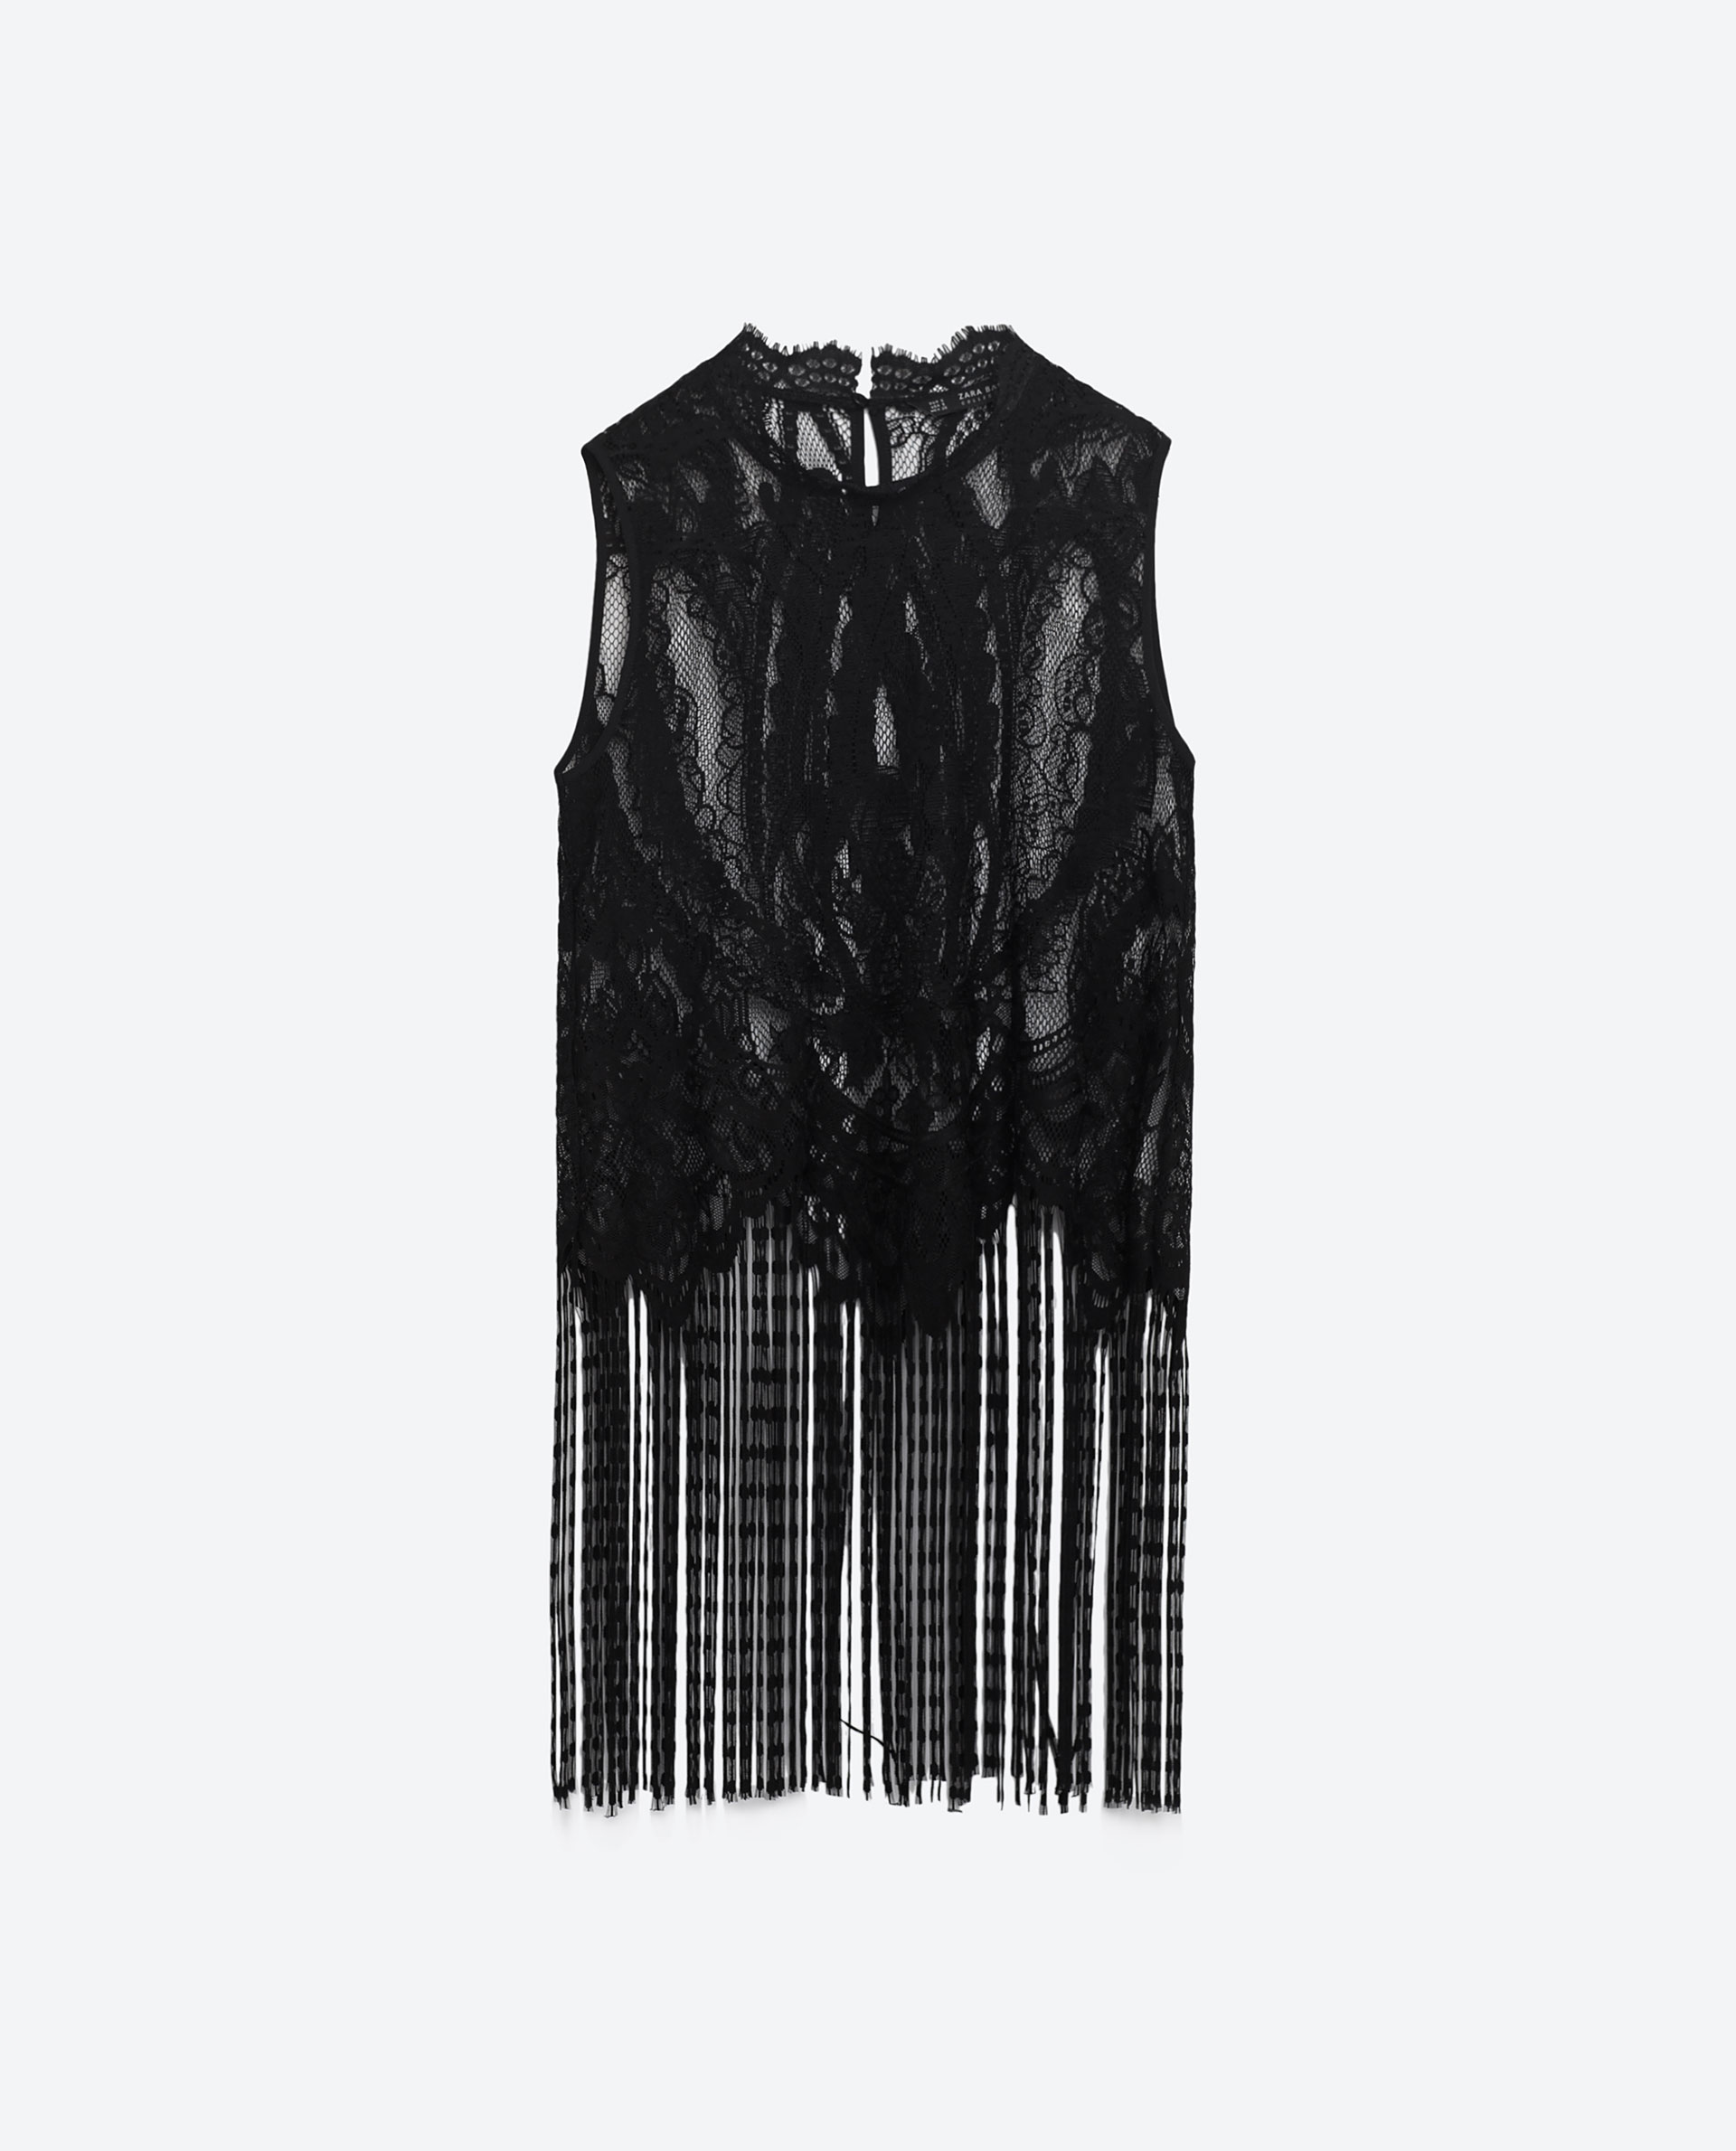 64815f1282d Counter all the intricate details of Zara s lace and fringe top with a  crisp black trouser beneath. Zara fringed blonde lace top